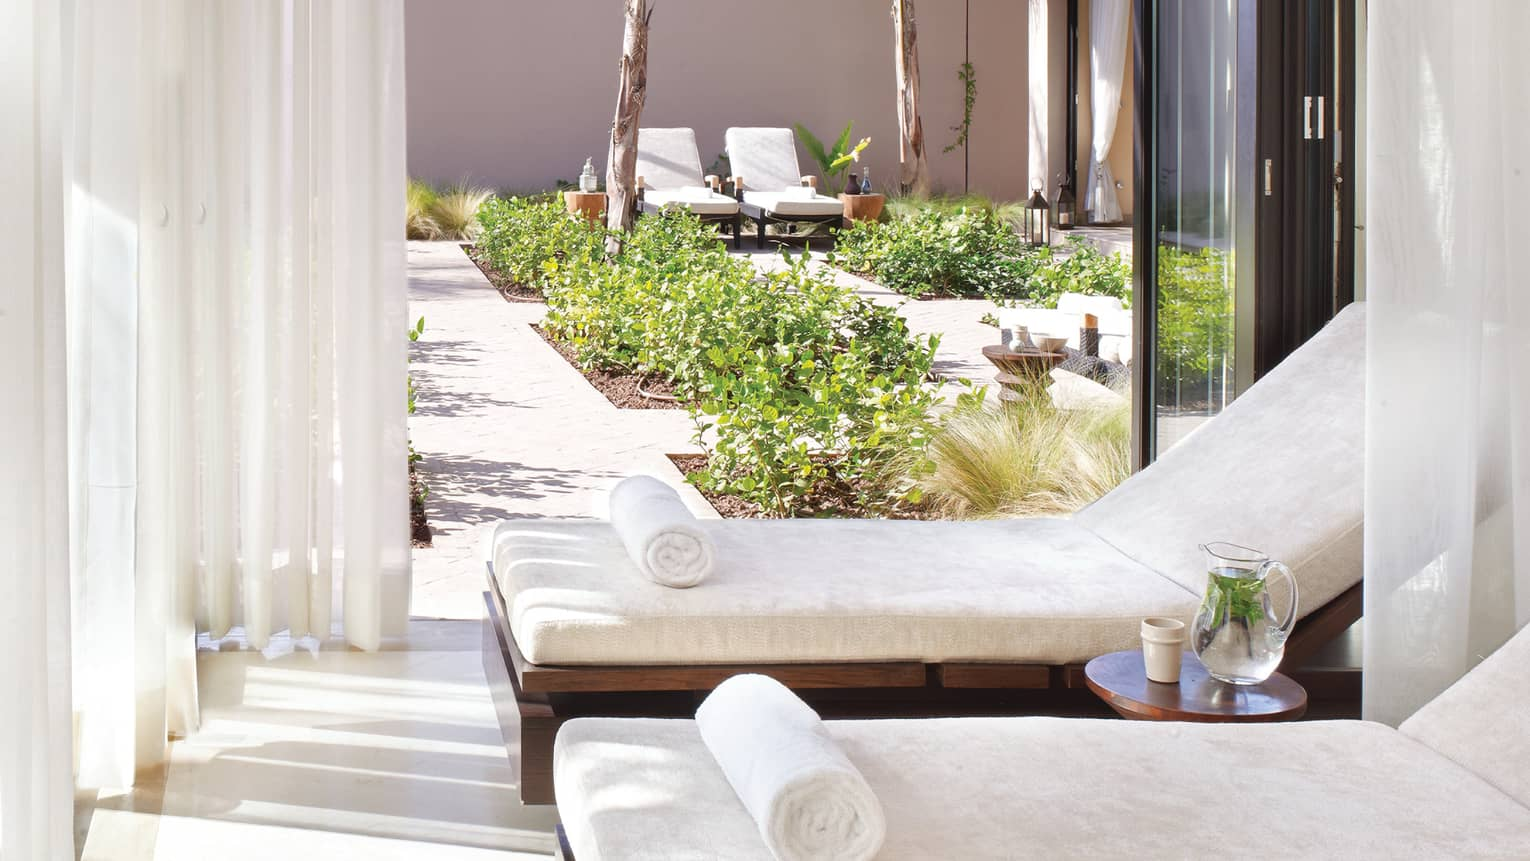 Two white lounge chairs in cabana on spa patio